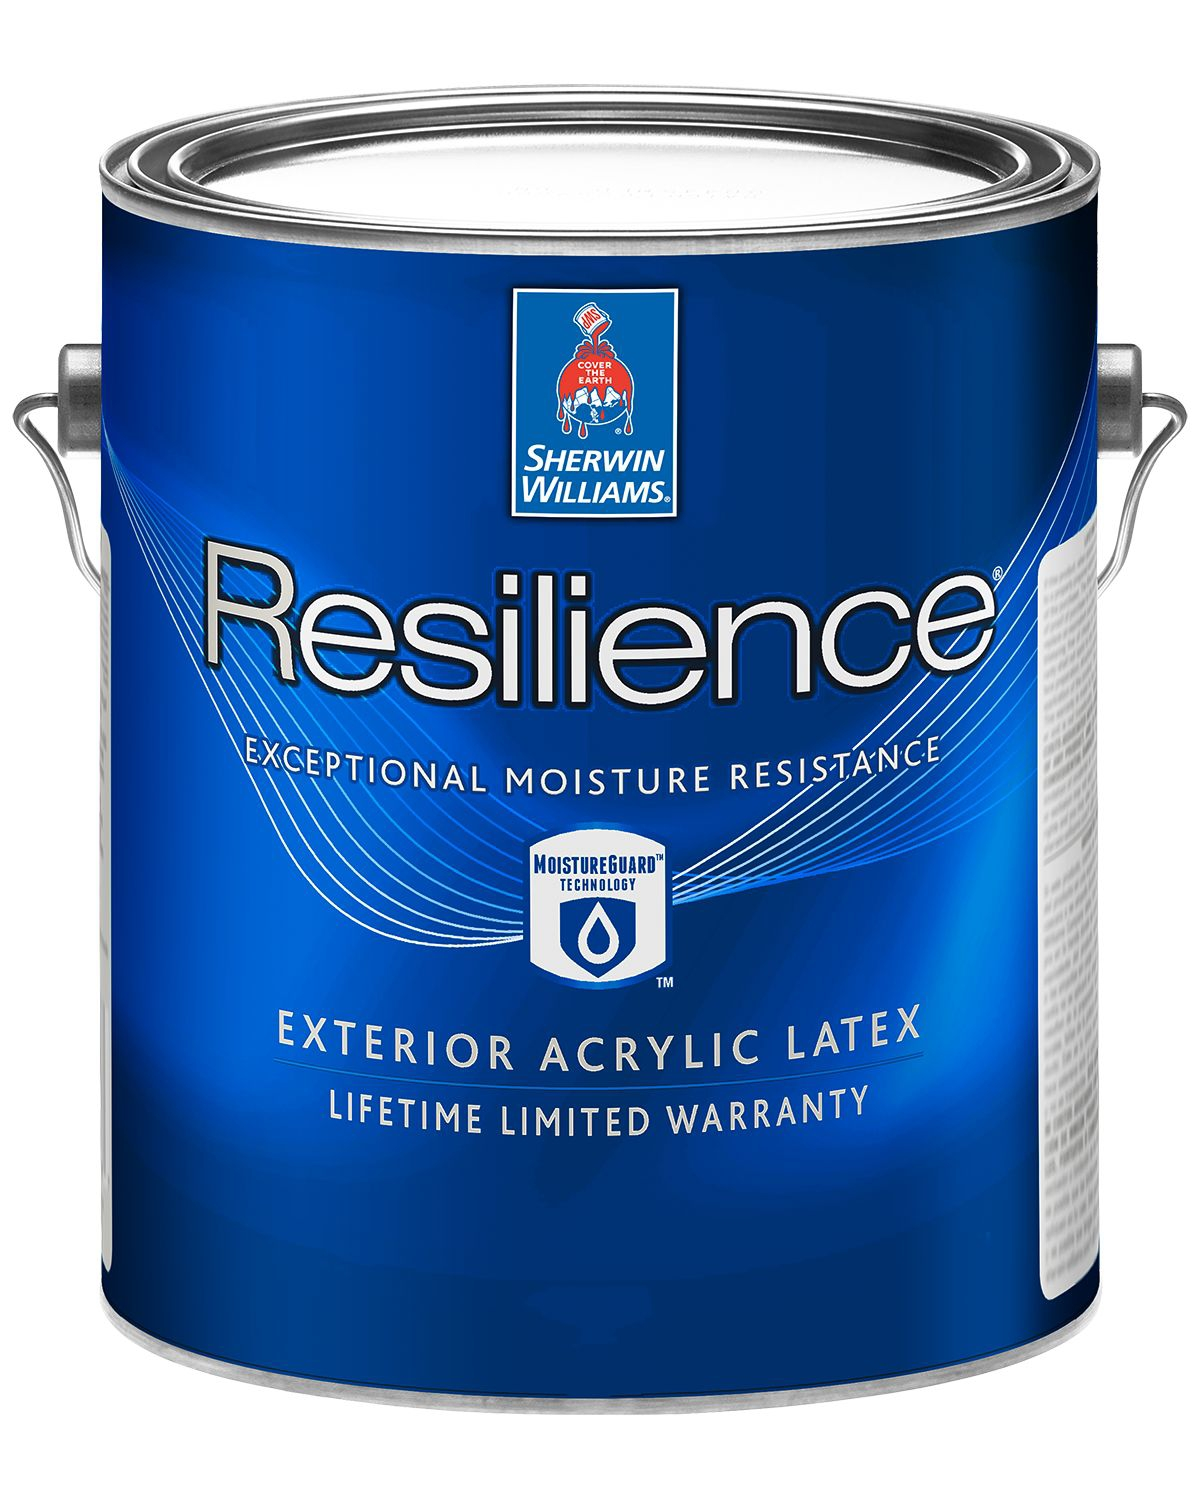 Acrylic Vs Latex Paint >> Sherwin Williams Emerald Exterior Paint Review | Tyres2c